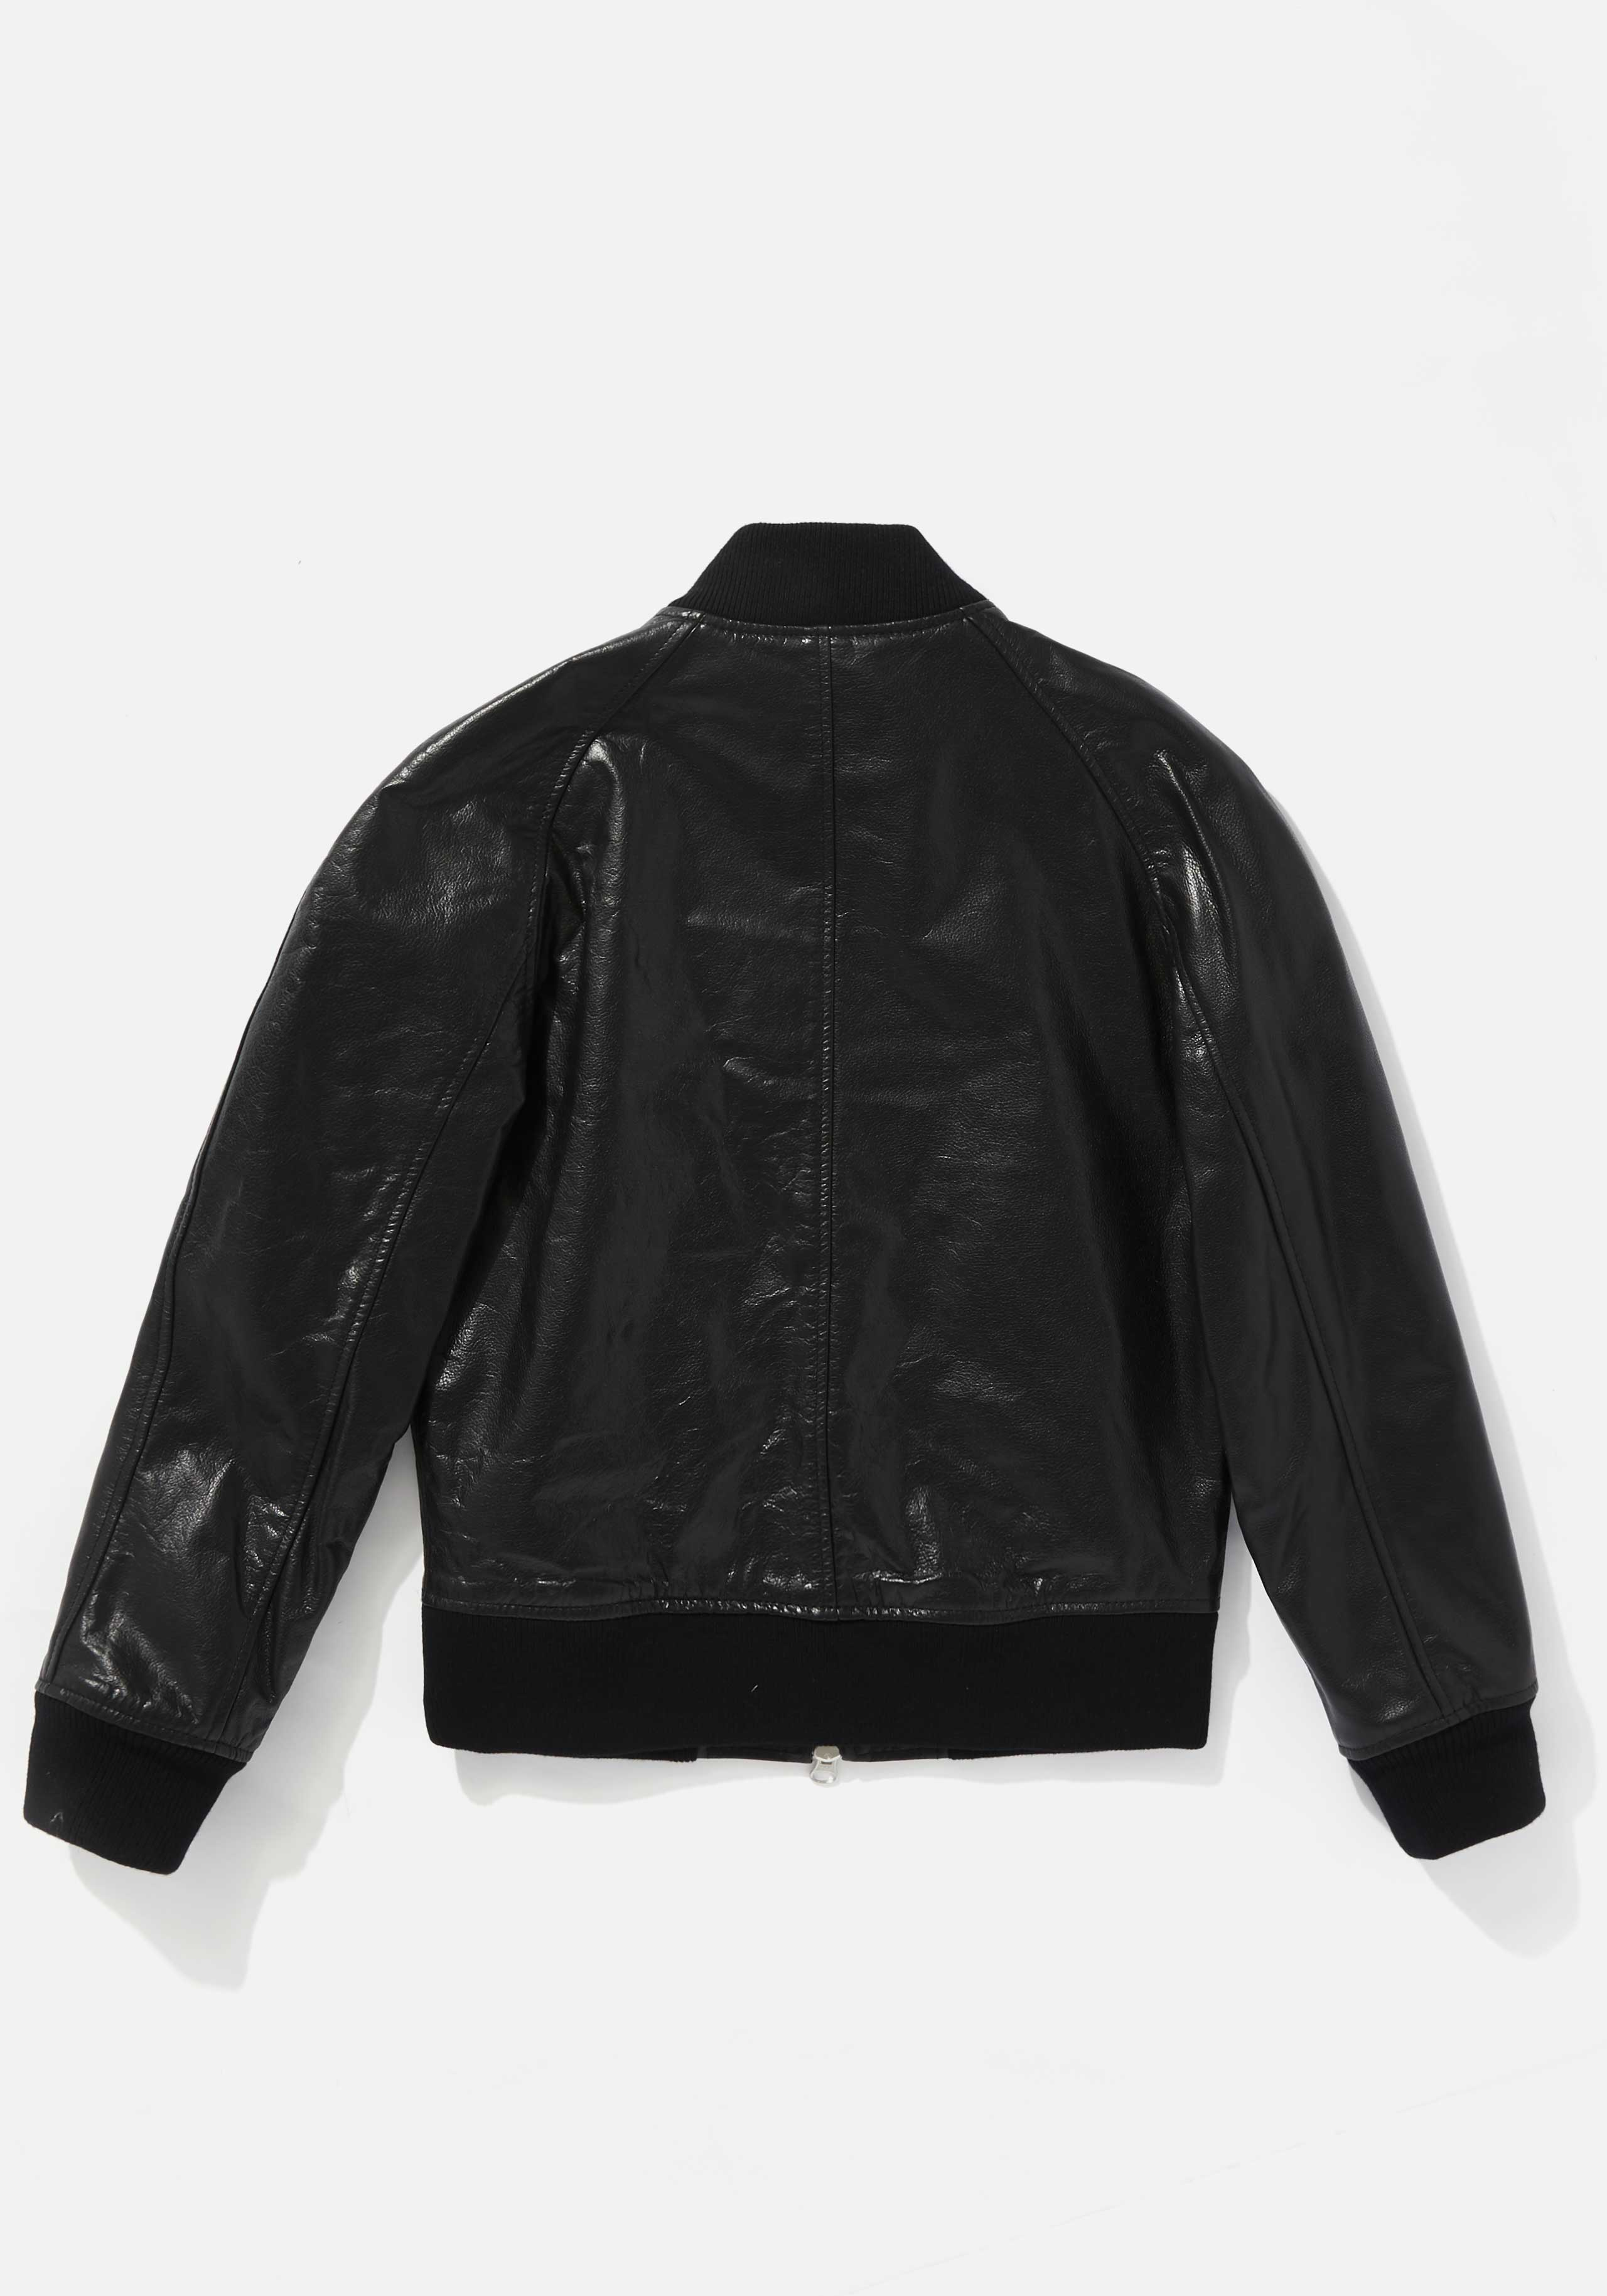 mki pdm leather bomber 2